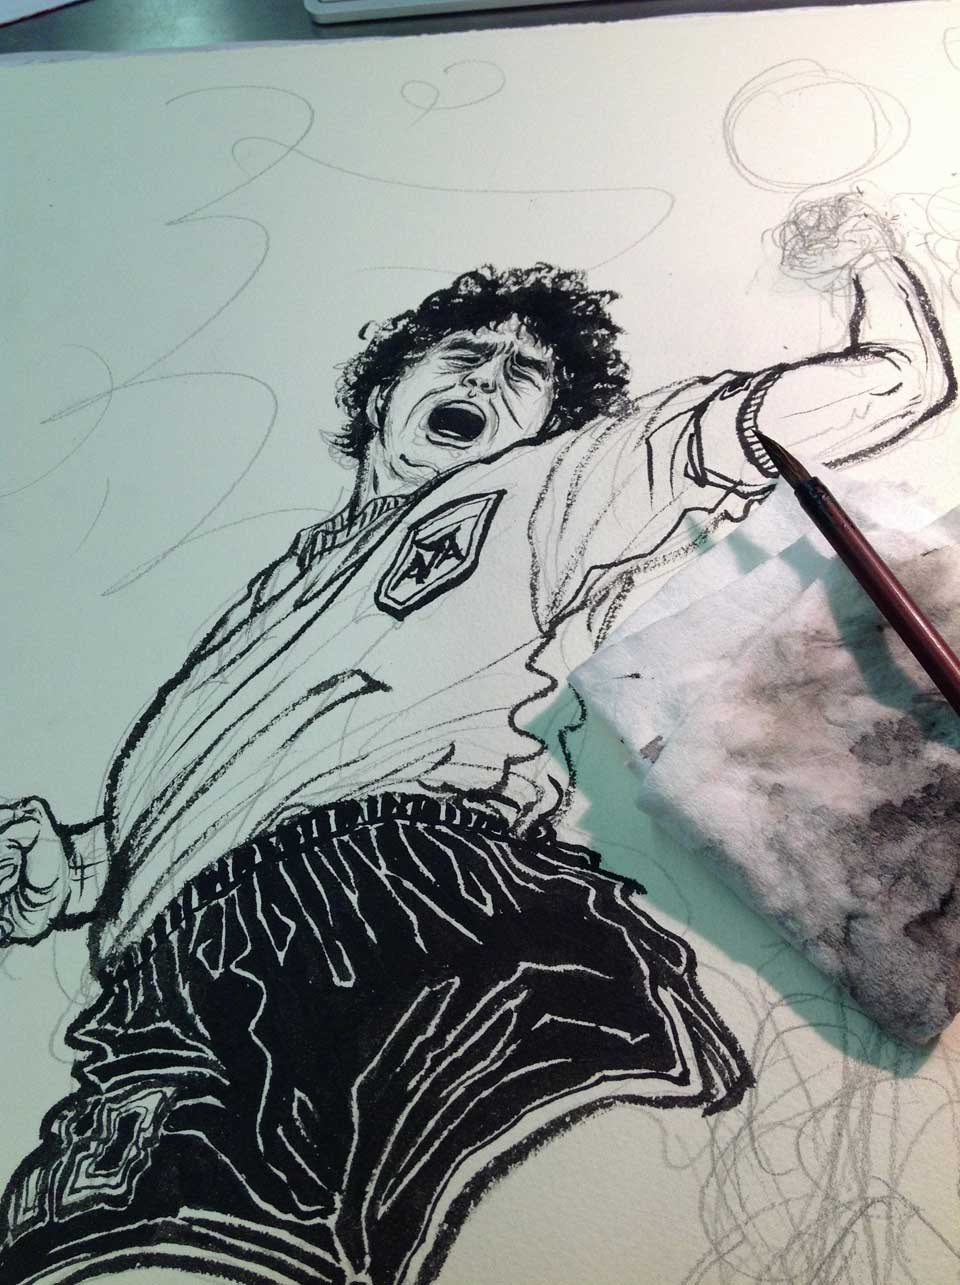 Yuko Shimizu - 8by8 Maradona's famous goals - yuko shimizu diego maradona eight by eight hand of god